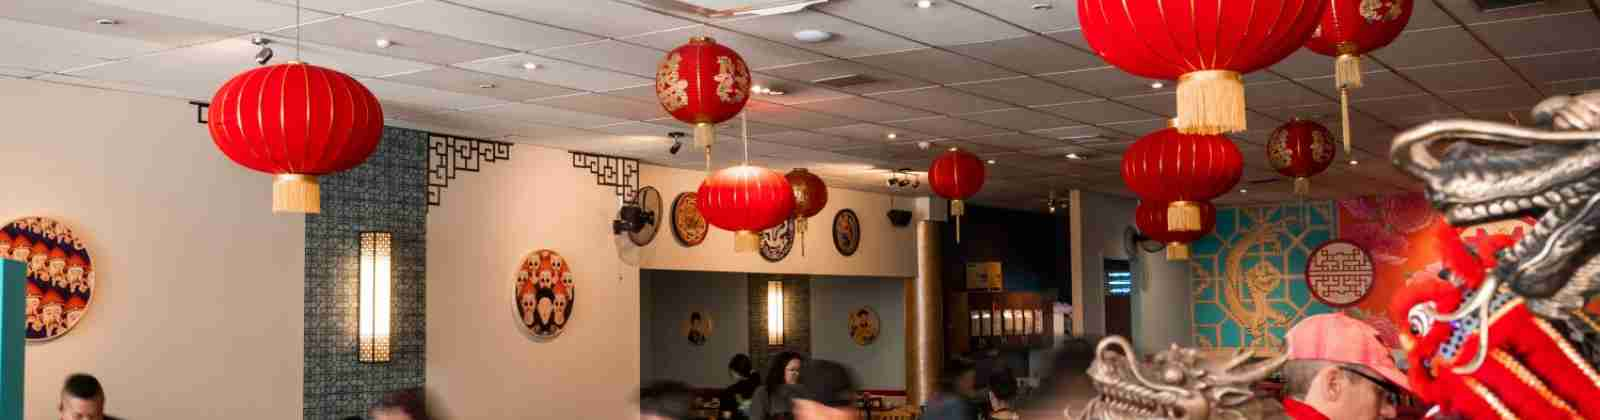 Dragons chinese restaurant yum cha